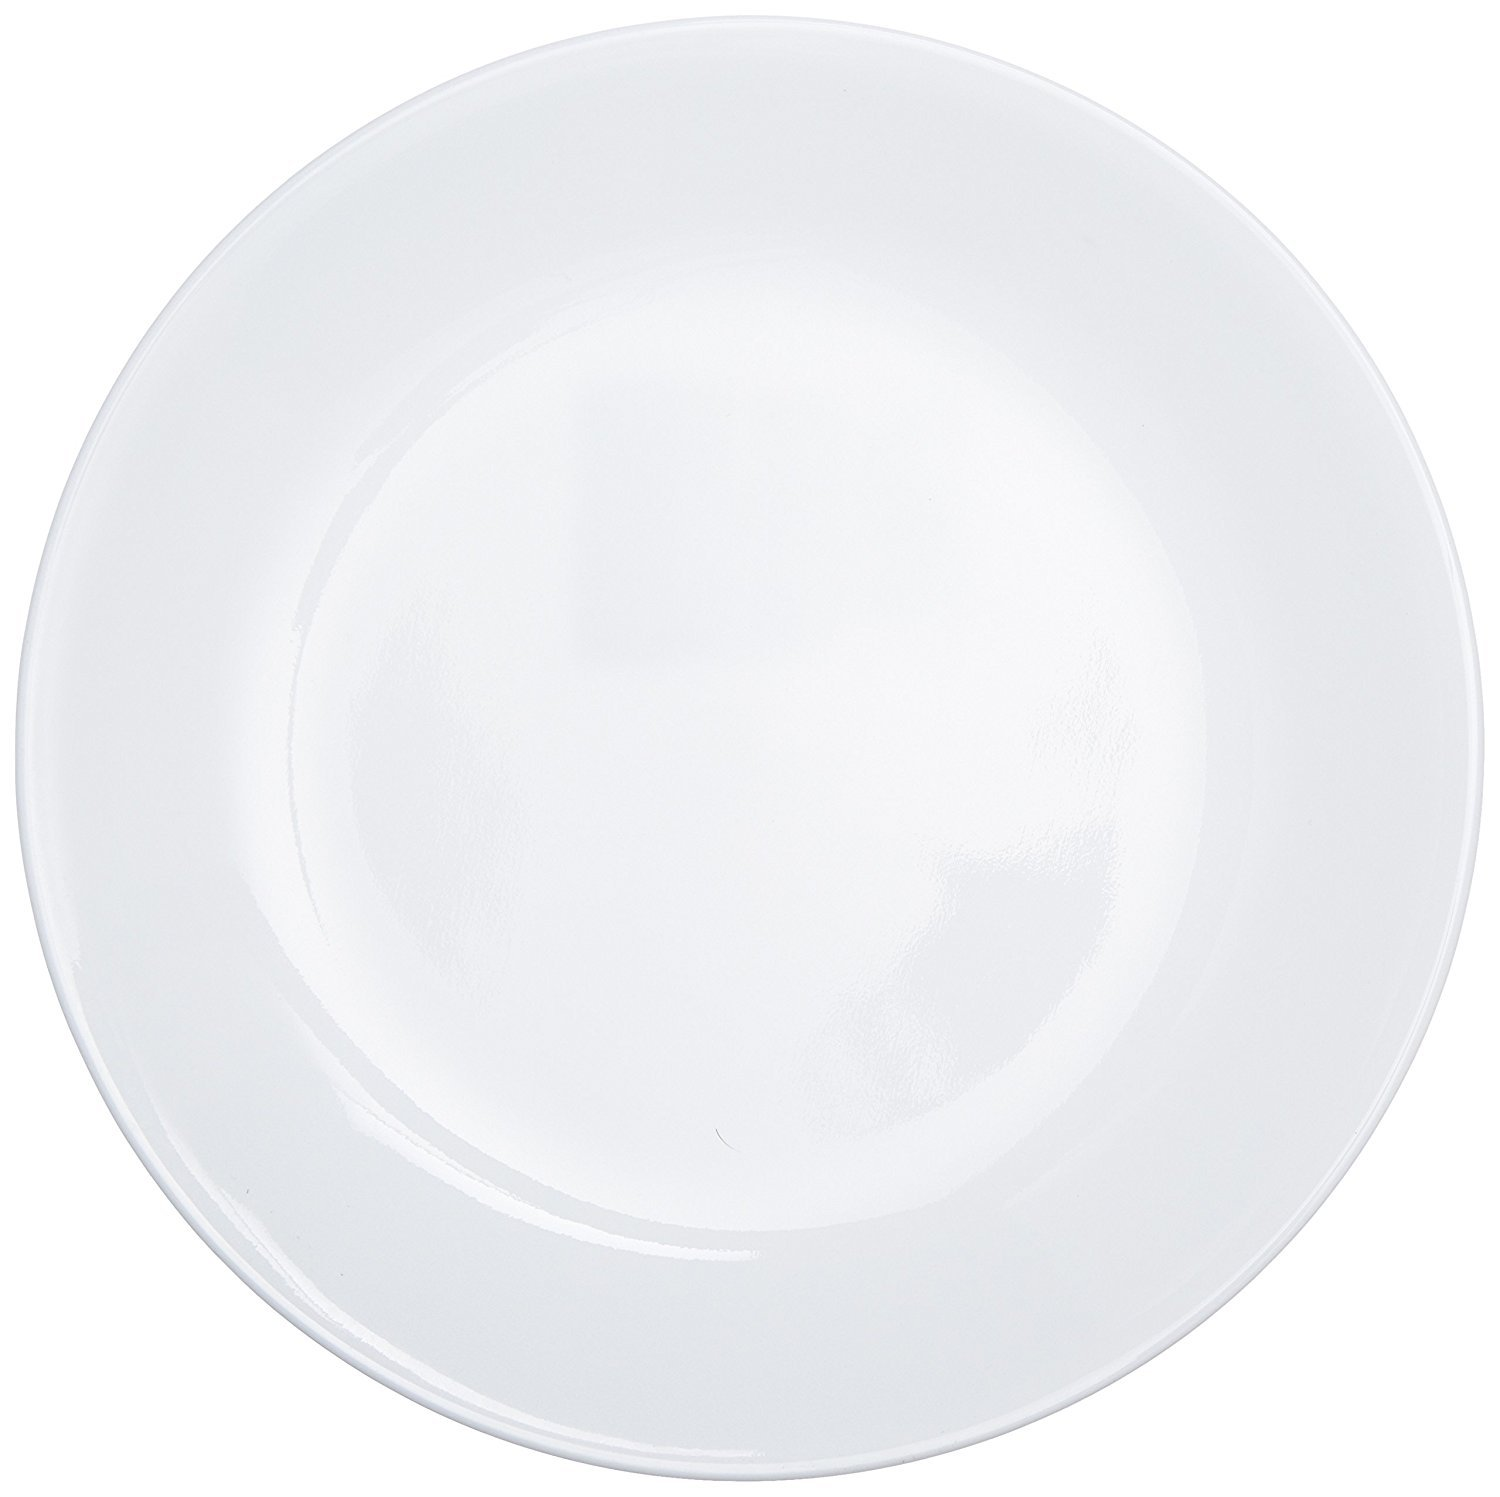 Corelle Livingware Luncheon Plate, Winter Frost White, Size: 8-1/2-Inch, 18-Plates by World Kitchen (Image #1)